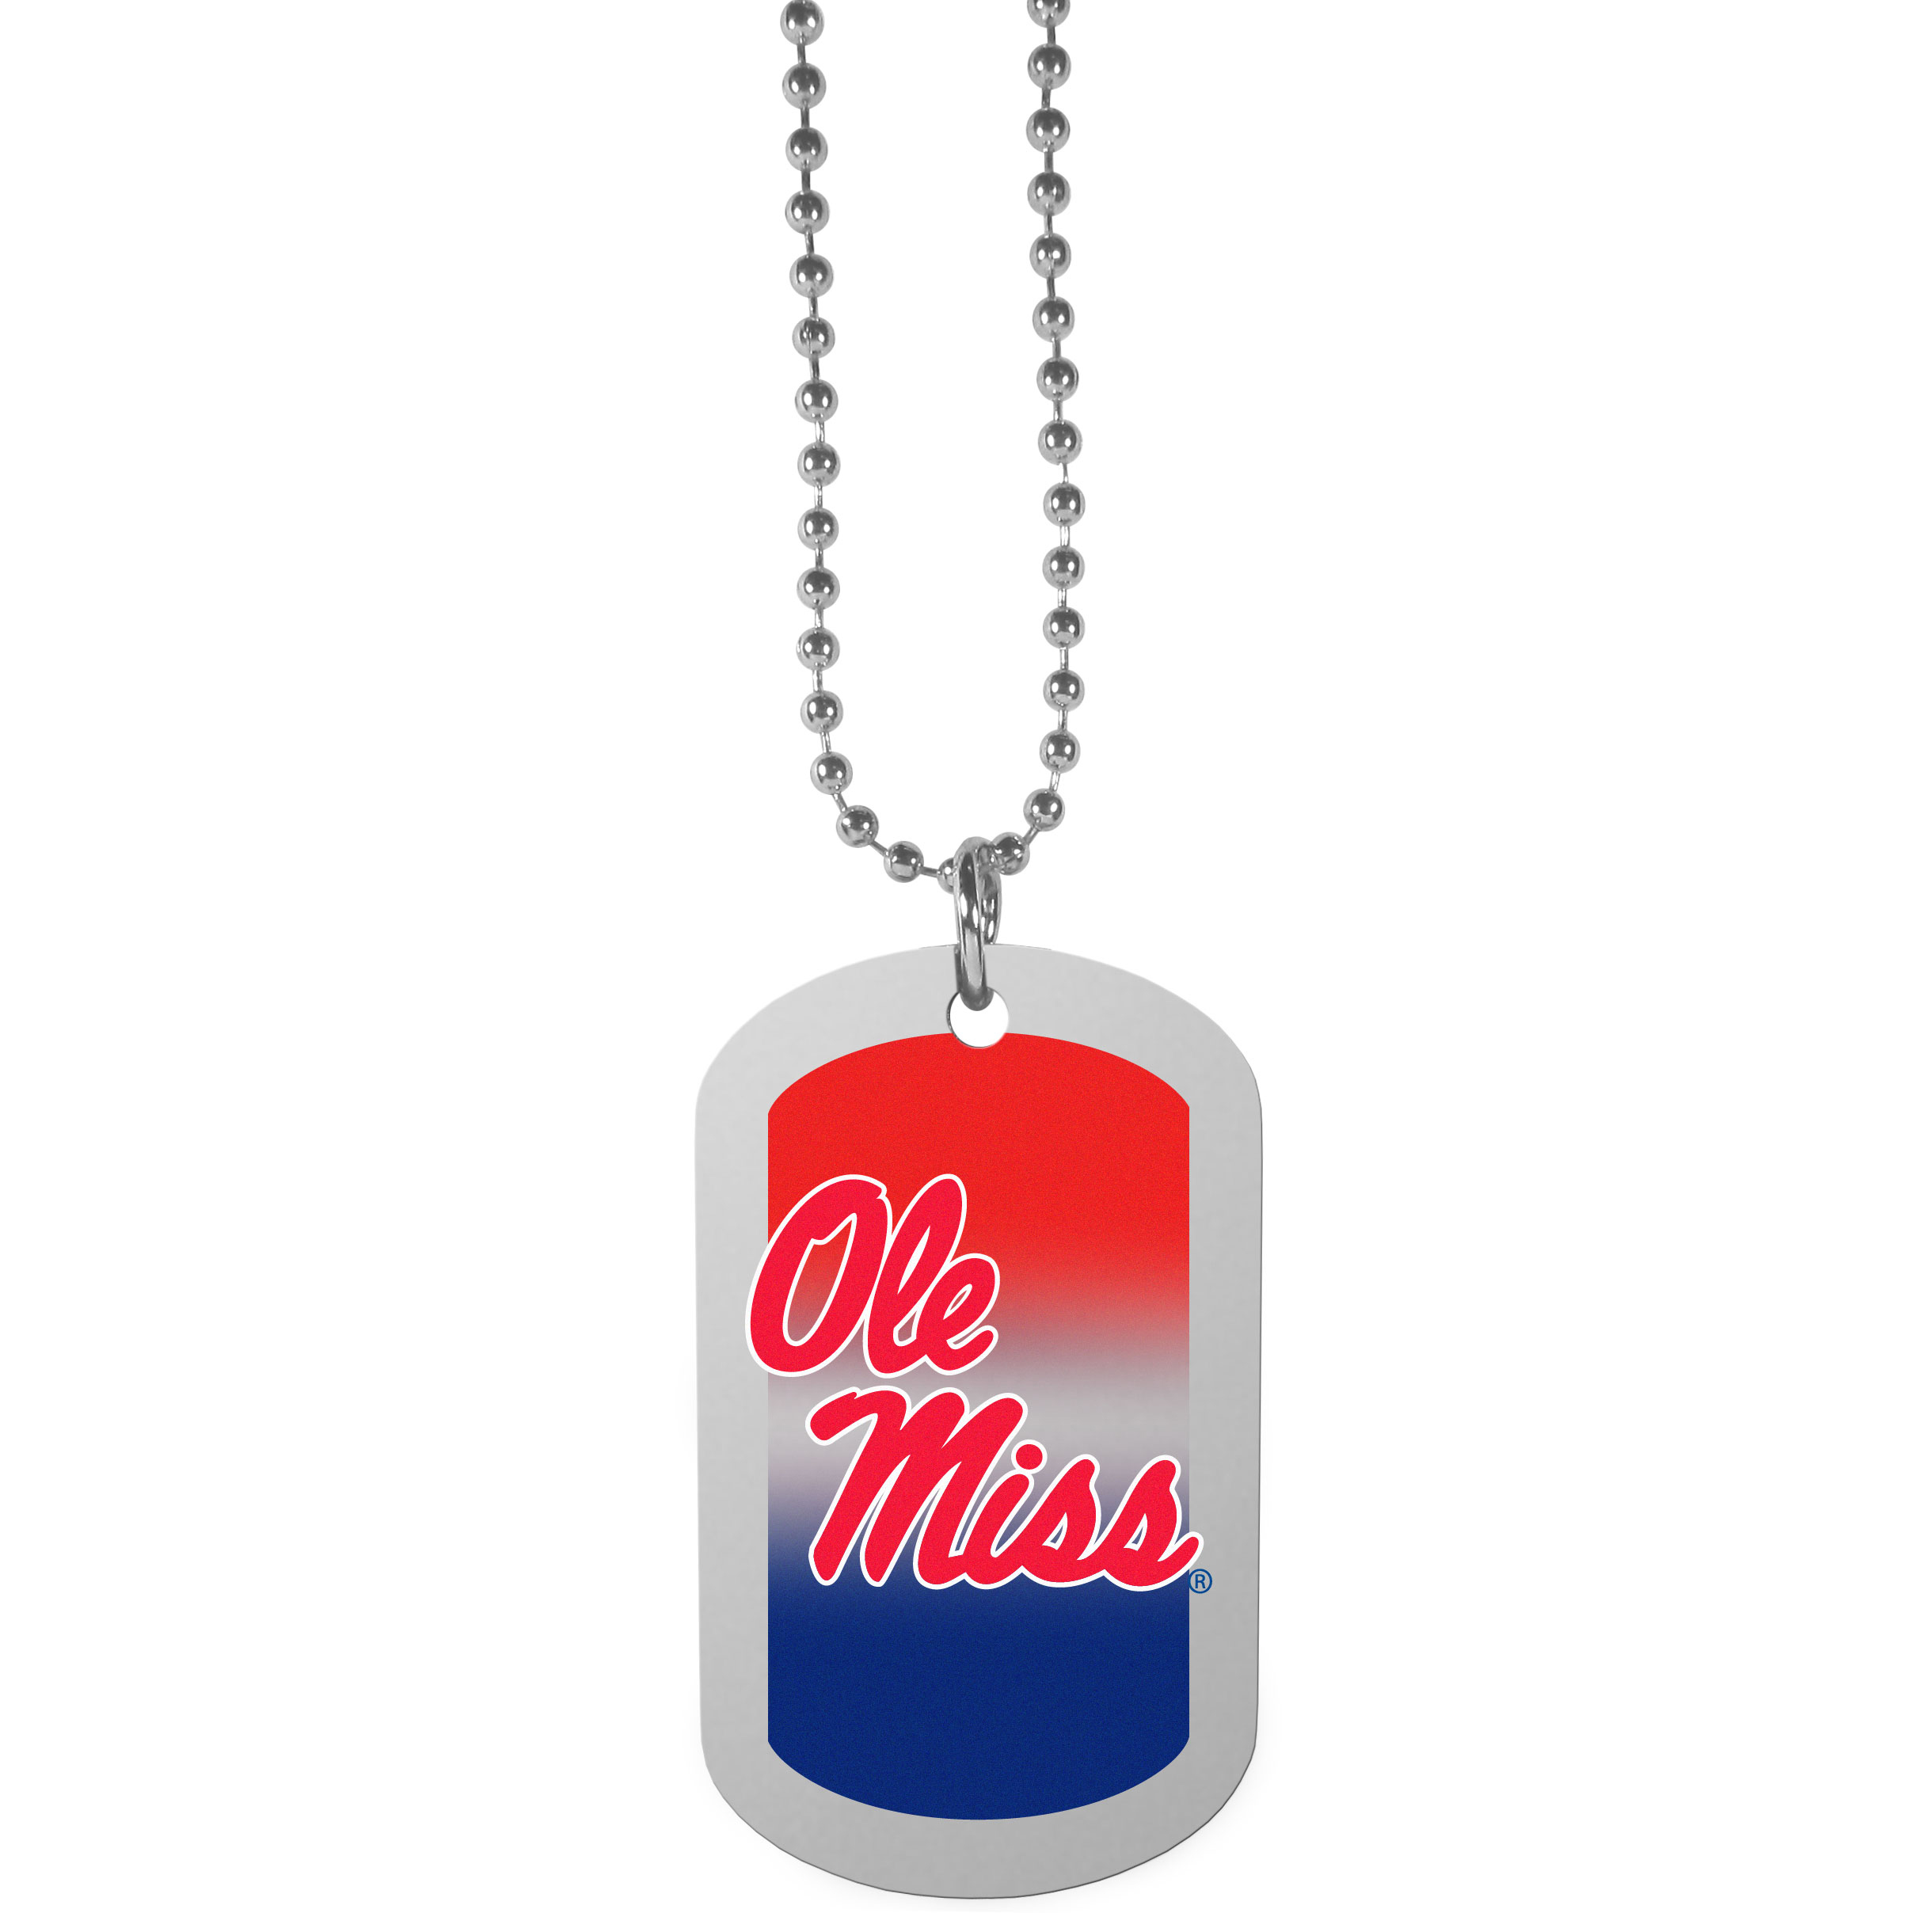 Mississippi Rebels Team Tag Necklace - Dog tag necklaces are a fashion statement that is here to stay. The sporty version of the classic tag features a gradient print in team colors featuring a full color team logo over a high polish tag to create a bold and sporty look. The tag comes on a 26 inch ball chain with a ball and joint clasp. Any Mississippi Rebels would be proud to wear this attractive fashion accessory.